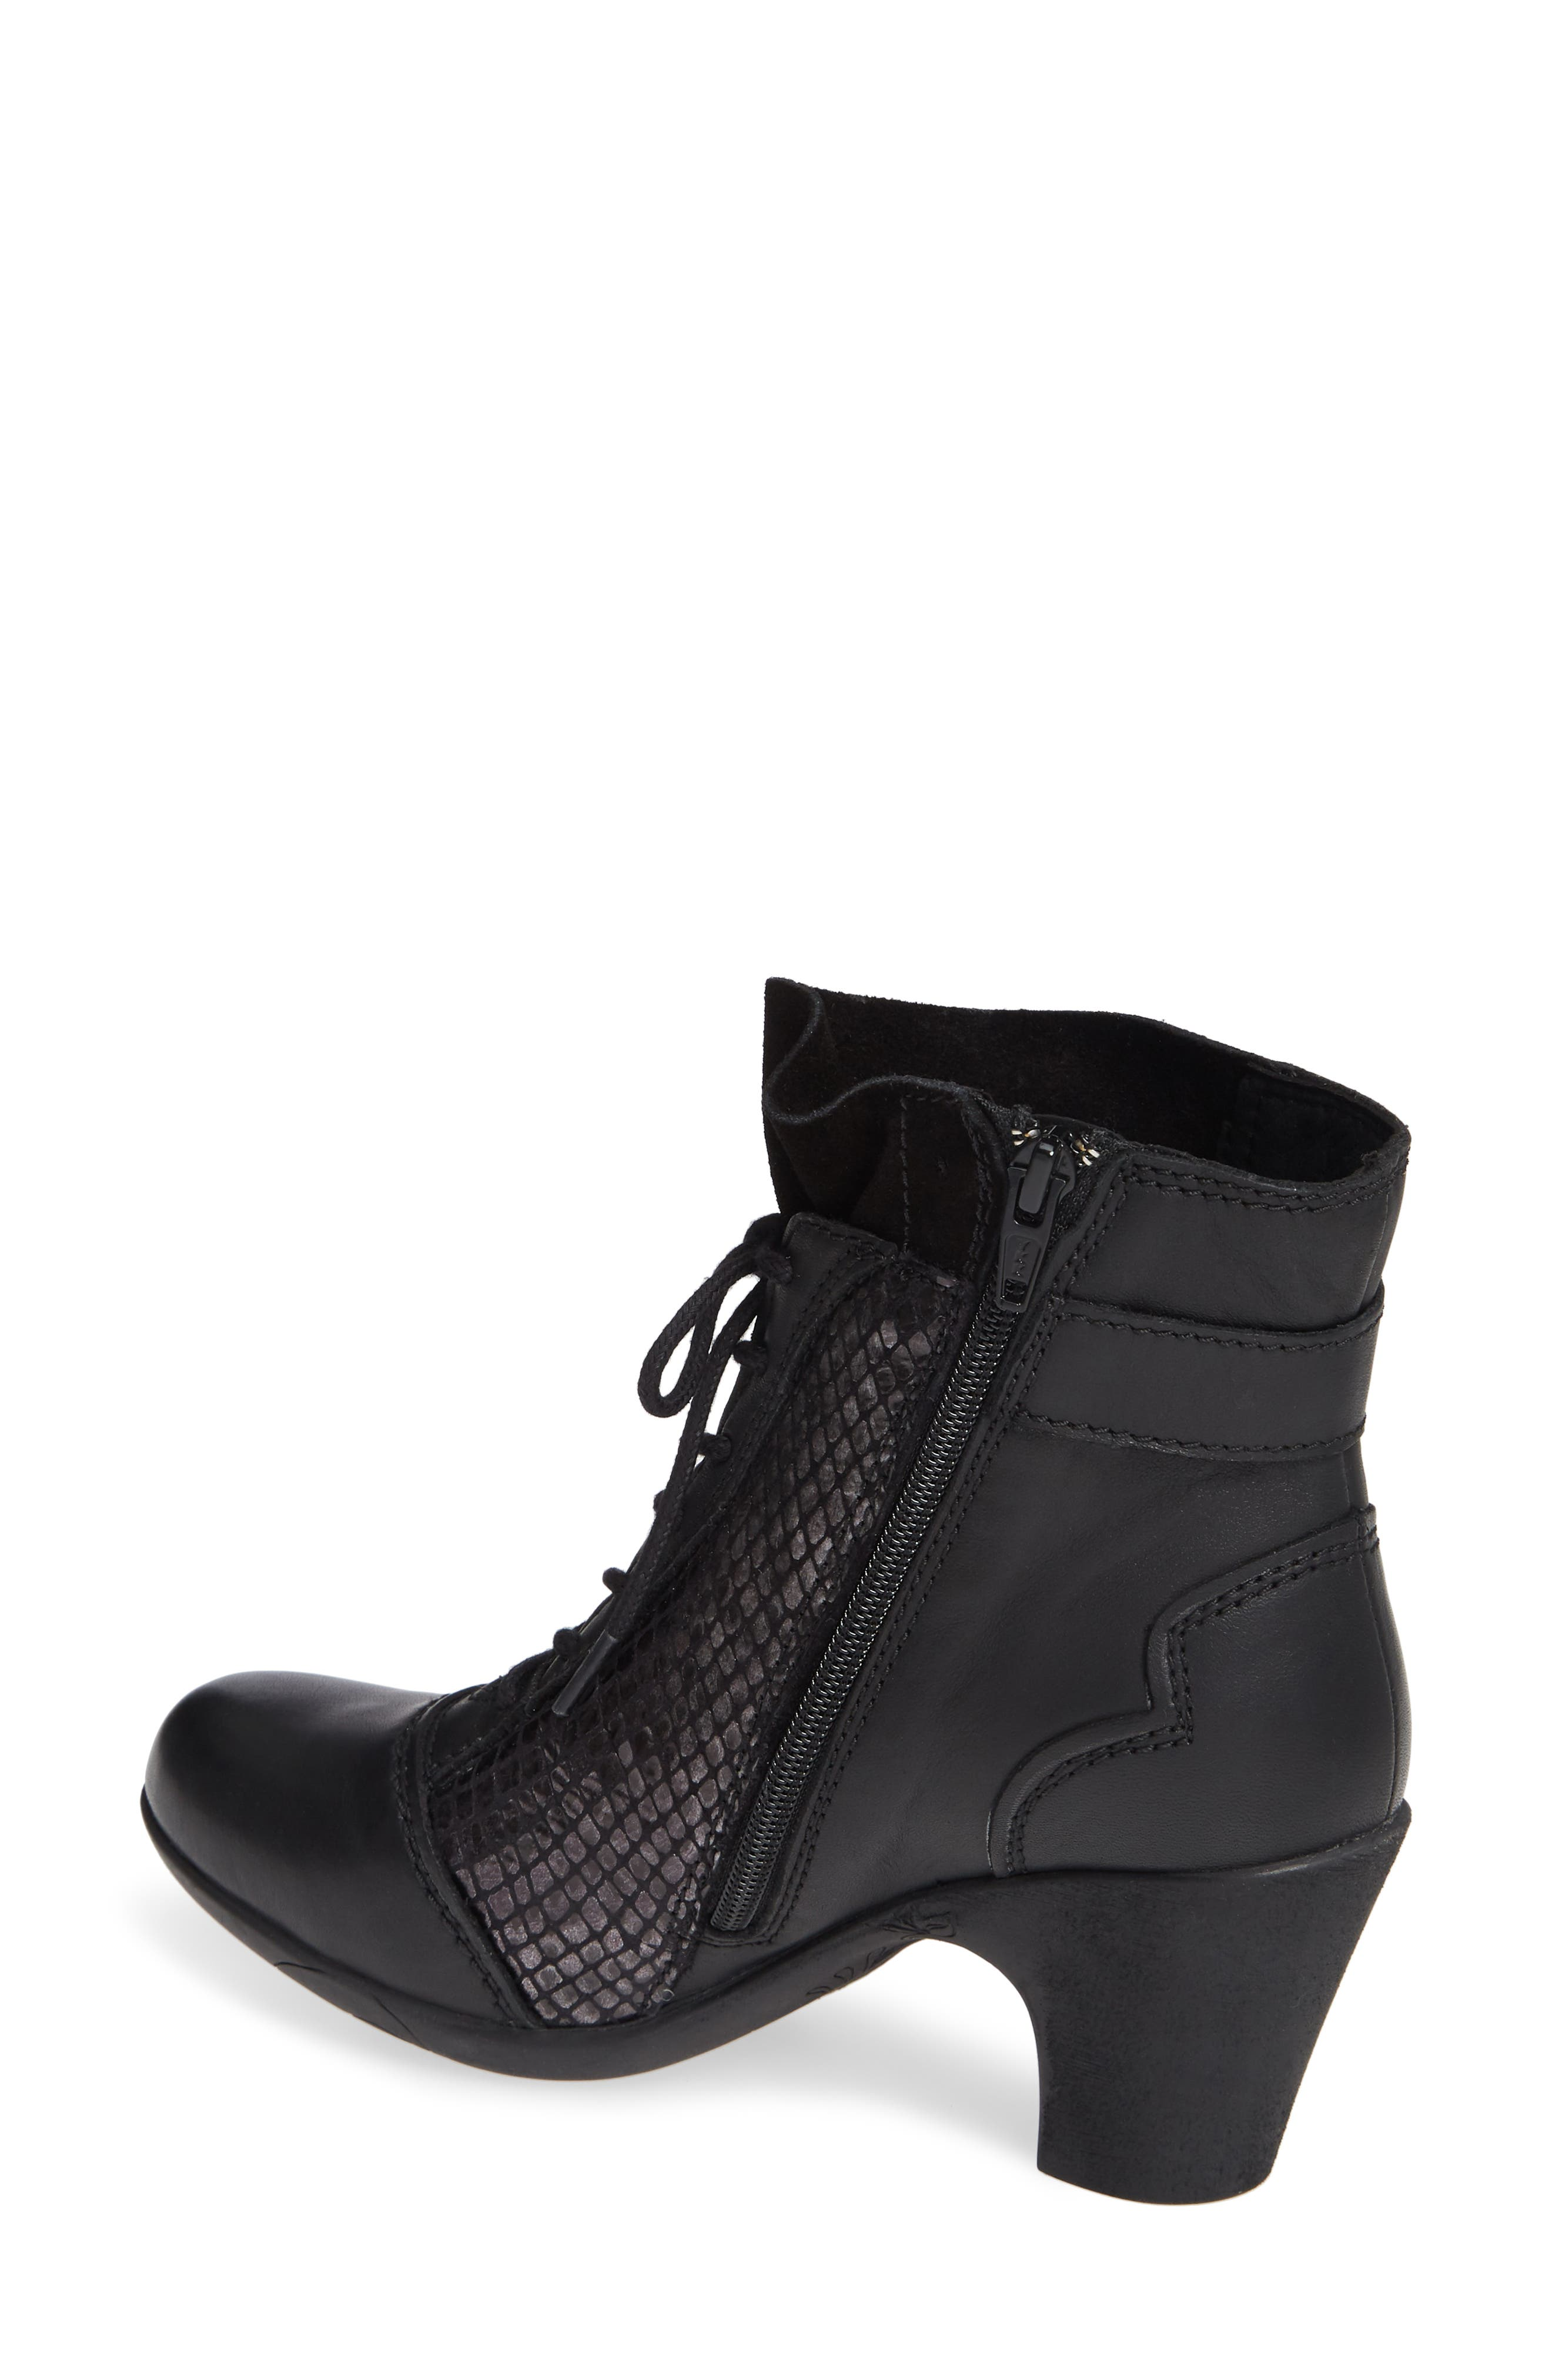 'Jesse' Lace-Up Bootie,                             Alternate thumbnail 2, color,                             BLACK TAIPAN LEATHER